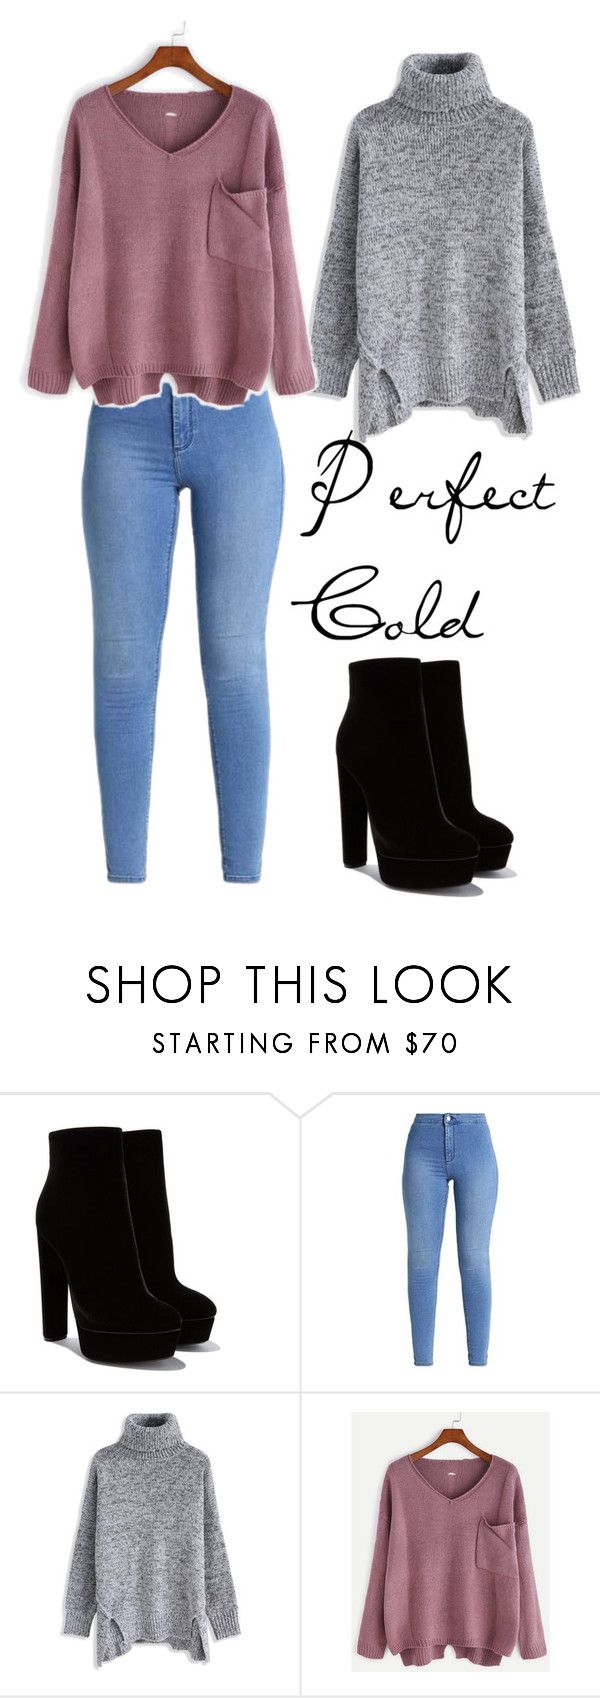 """""""♥_________♥"""" by lore-4ever-directioner on Polyvore featuring moda y Chicwish"""